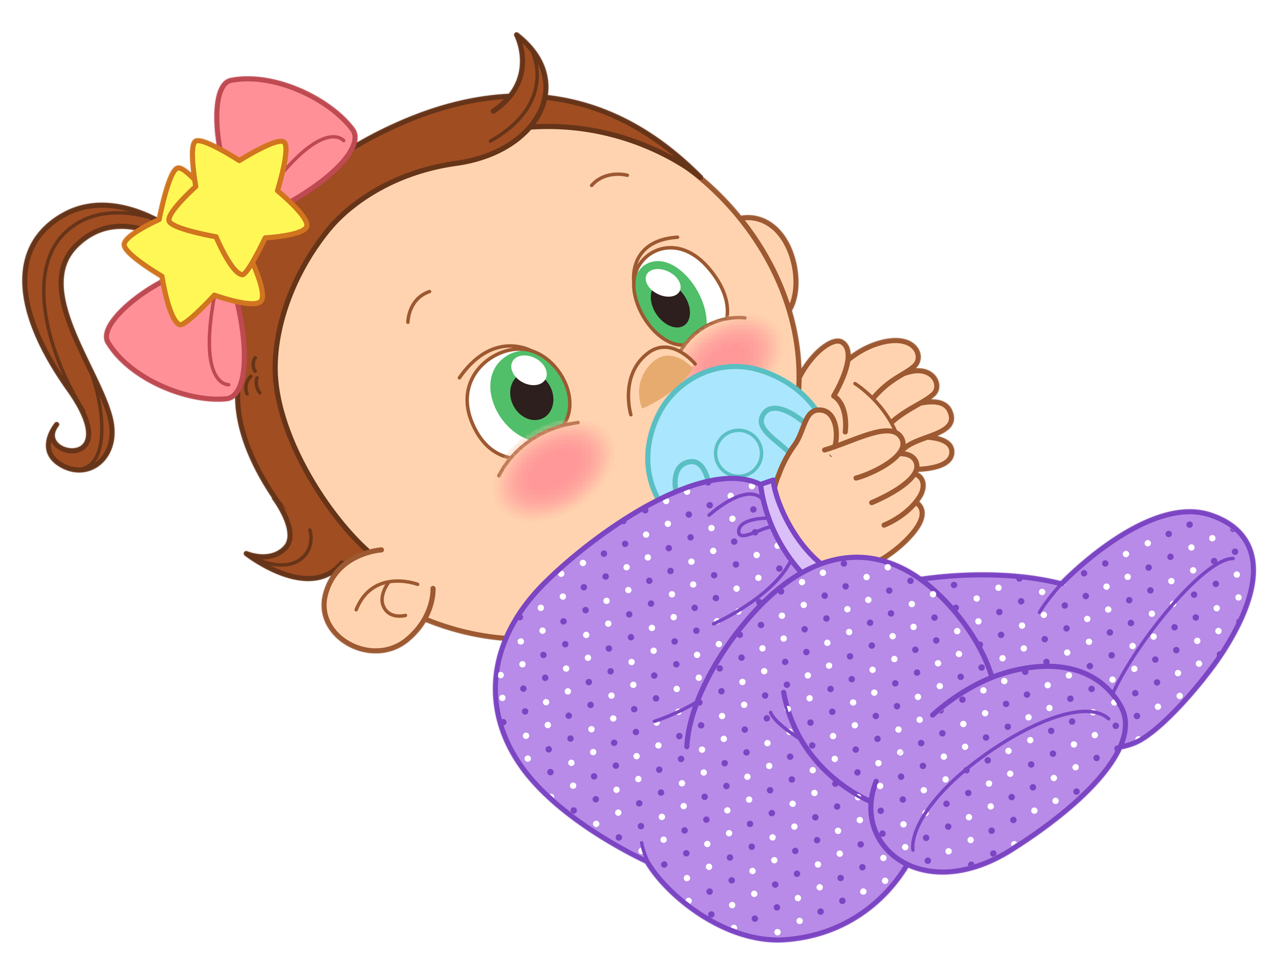 png baby cards. Memories clipart memory book